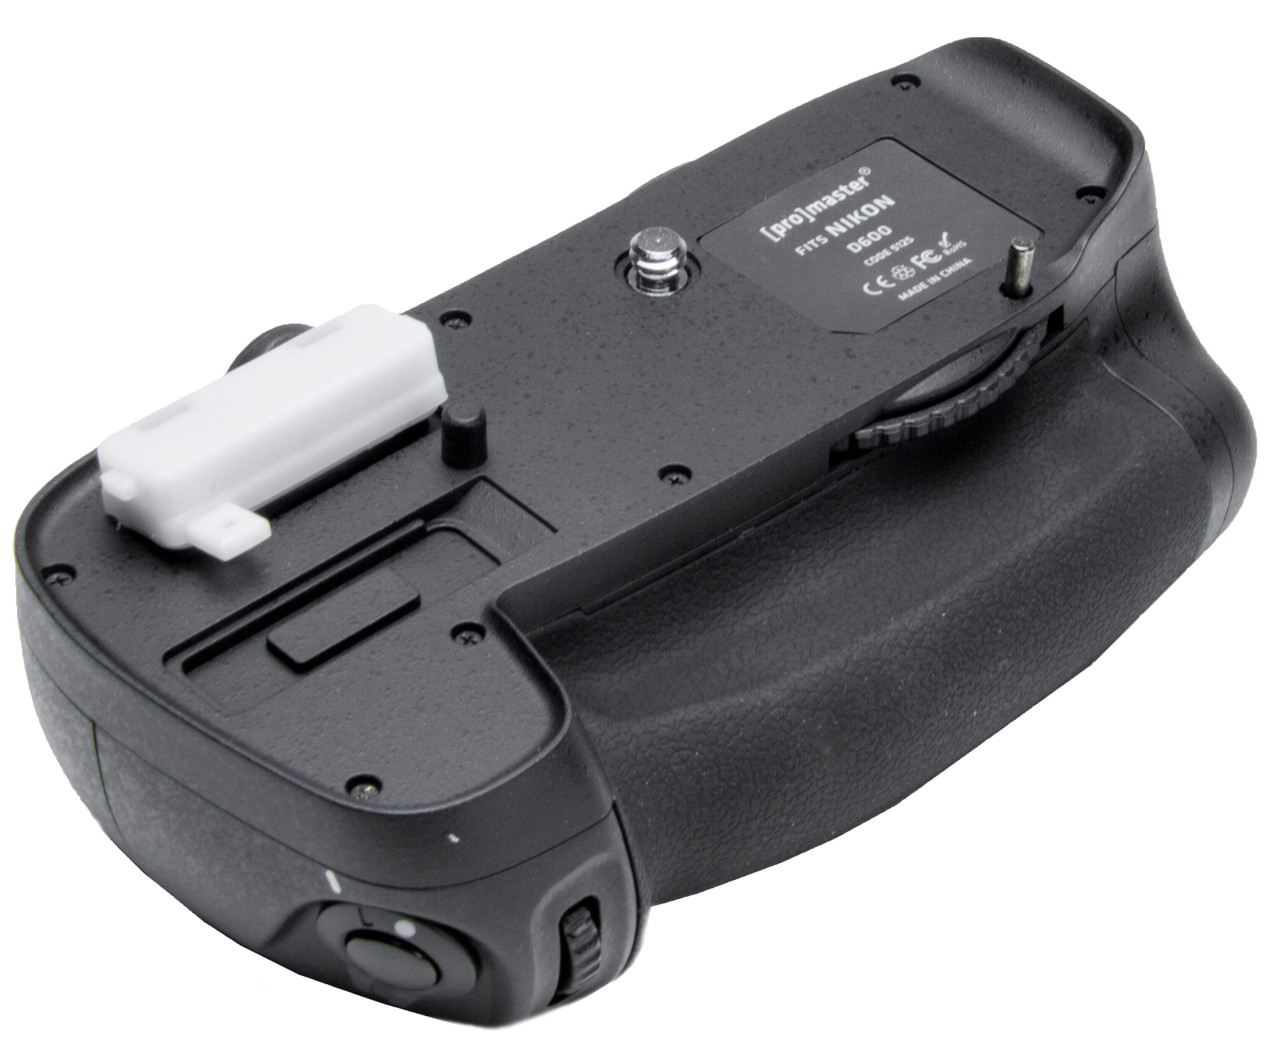 ProMaster Vertical Control Power Grip for Nikon D600 and D610 #5125